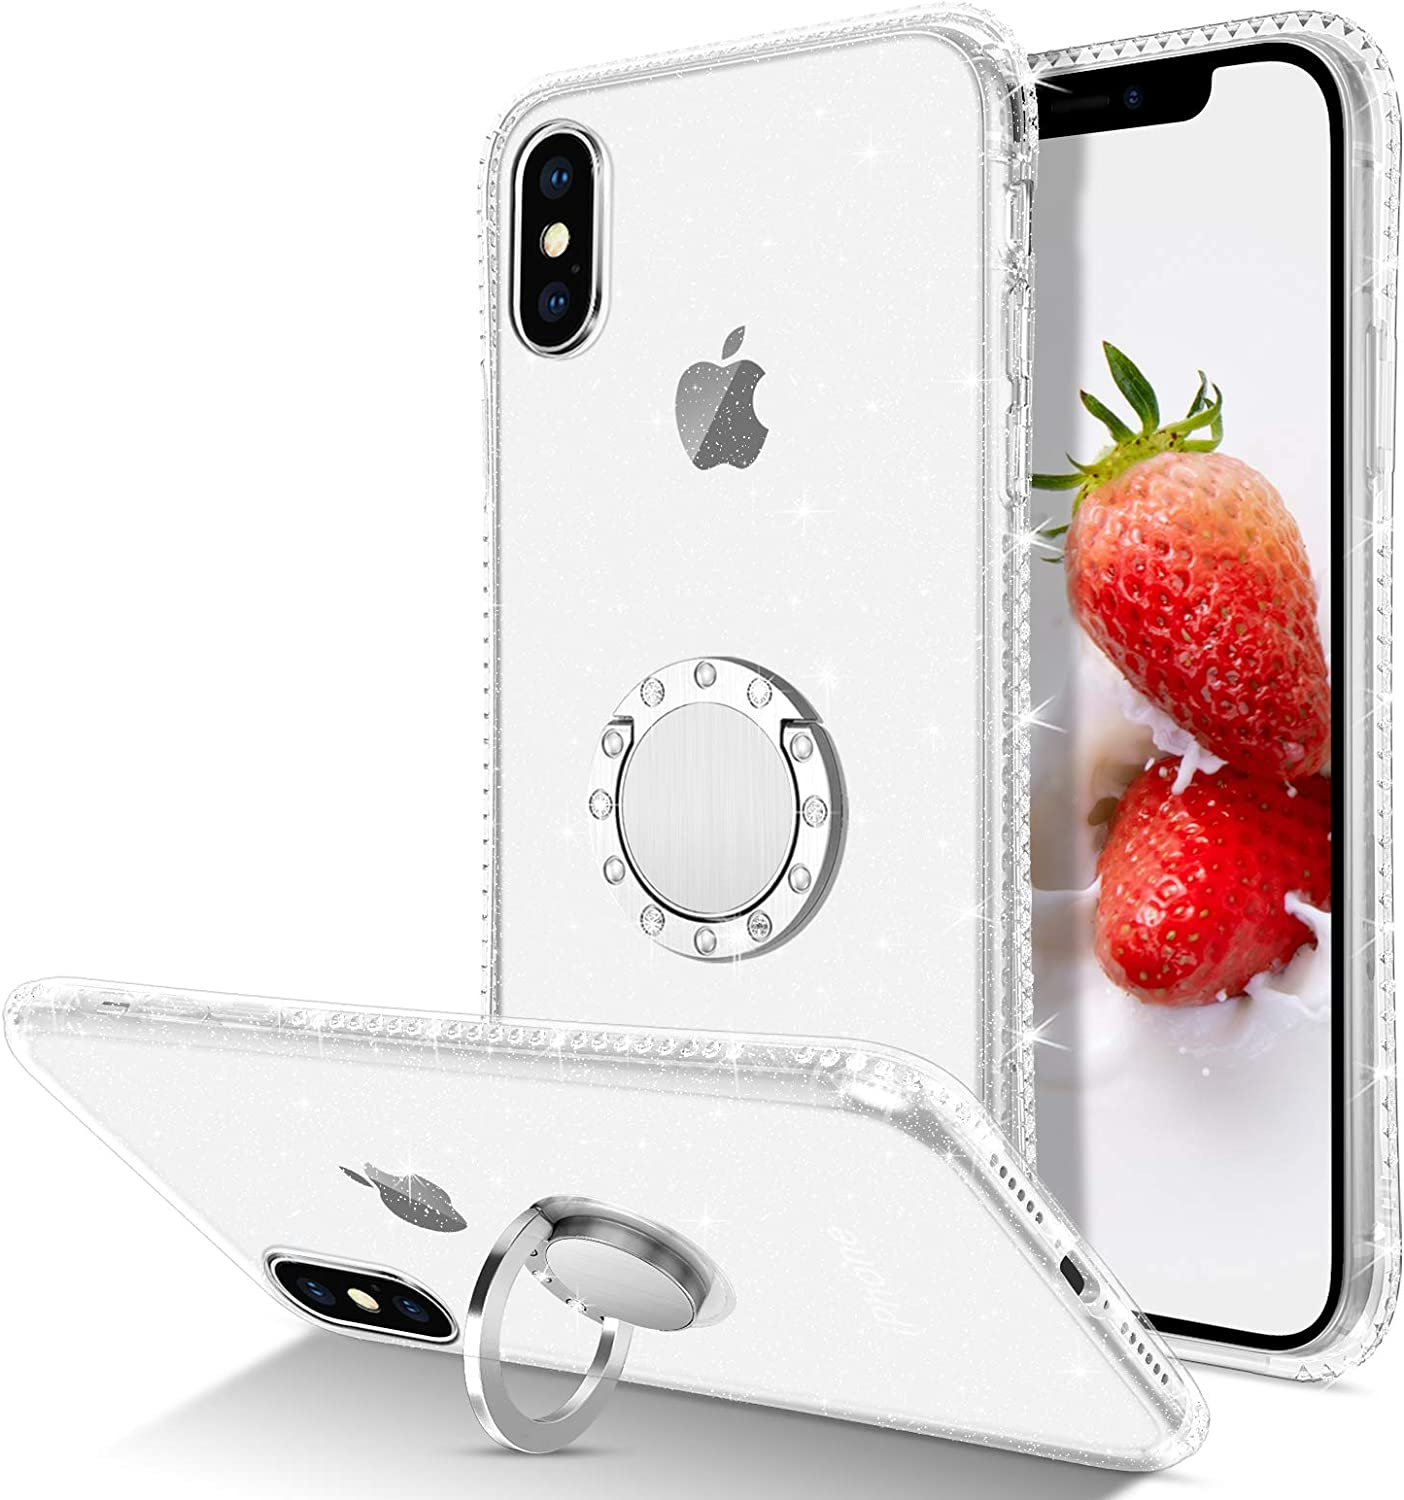 BENTOBEN iPhone X Case, iPhone Xs Case, Slim Clear | 360° Ring Holder Kickstand | Rhinestone Soft Rubber Hybrid Shockproof Protective Girls Women Cover for iPhone Xs/X 5.8 inch, Clear Glitter